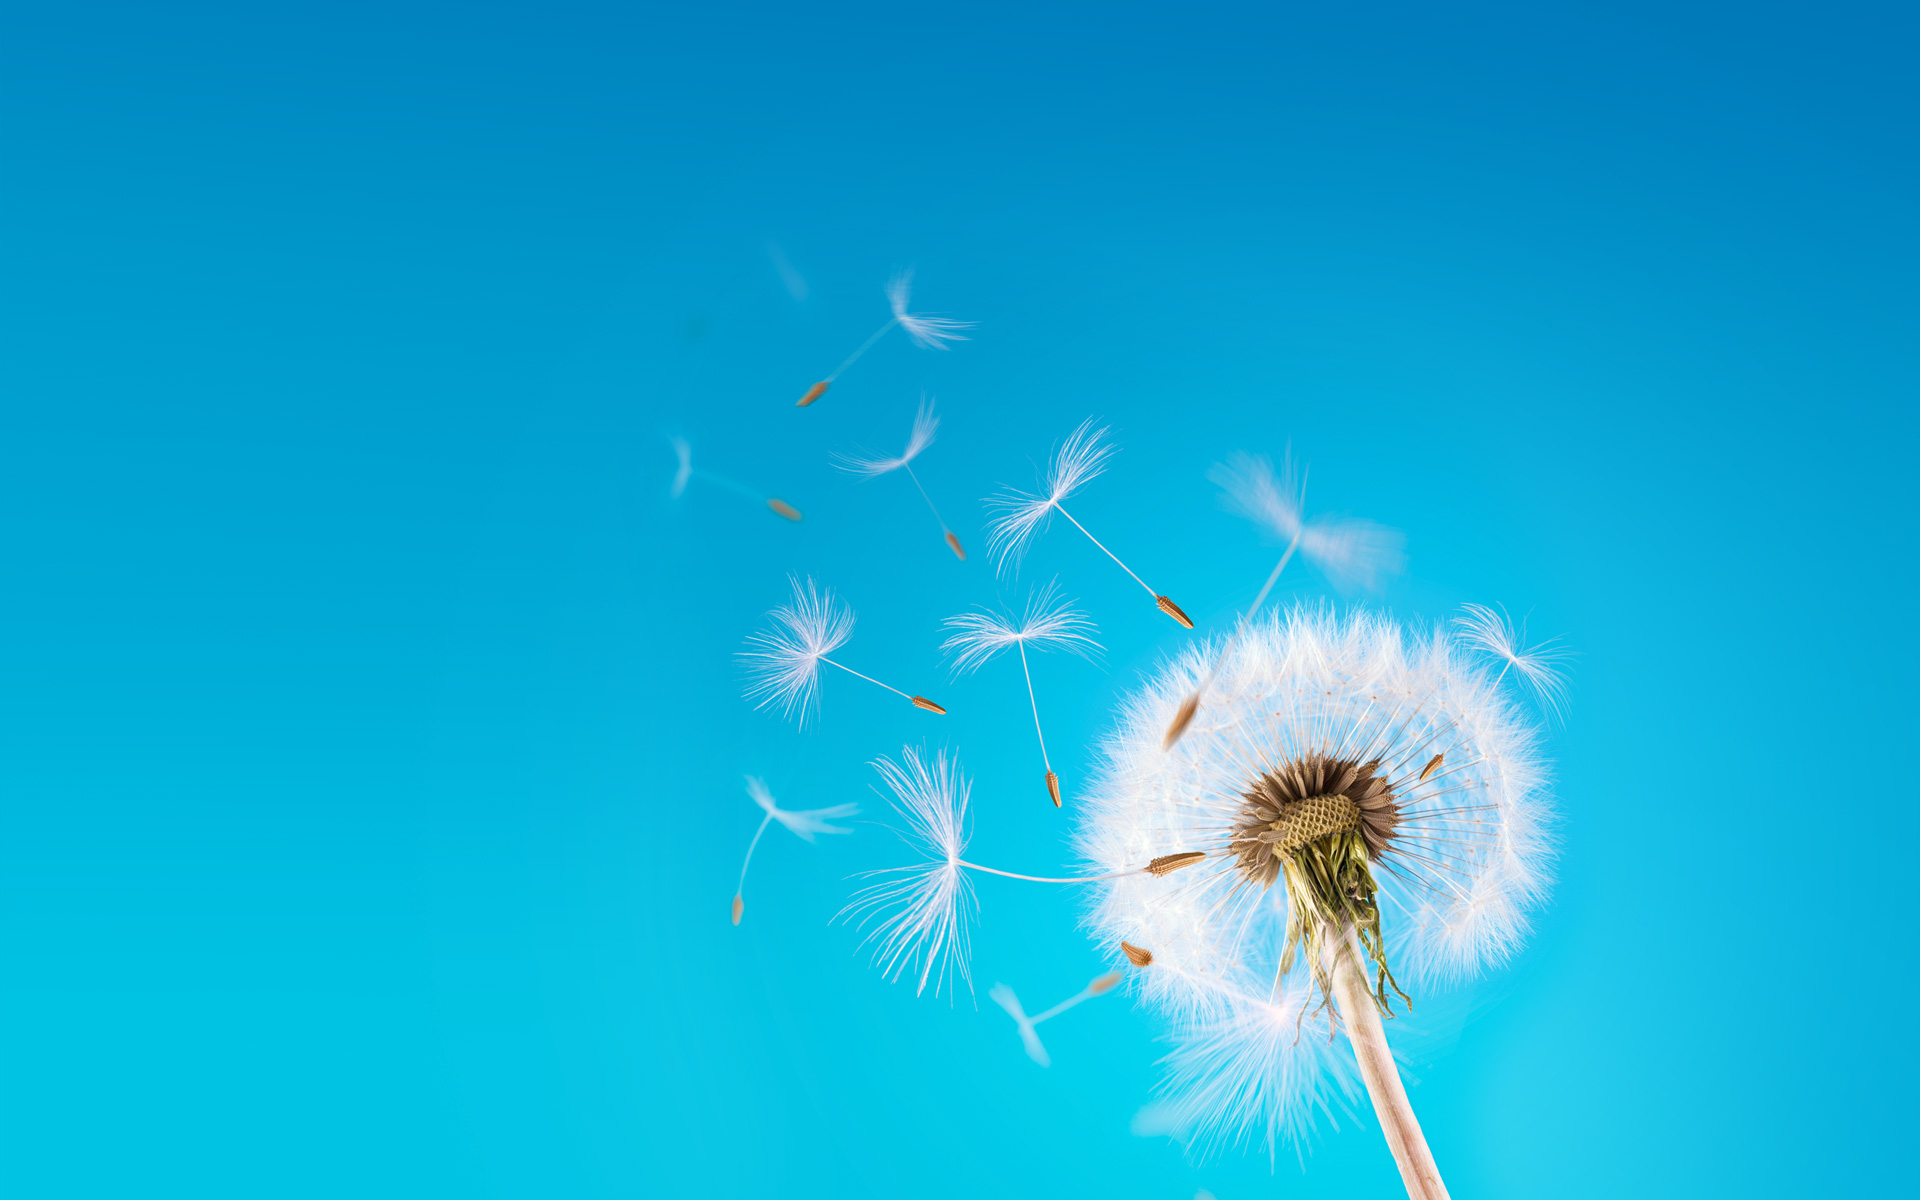 Dandelion wallpaper - 973379